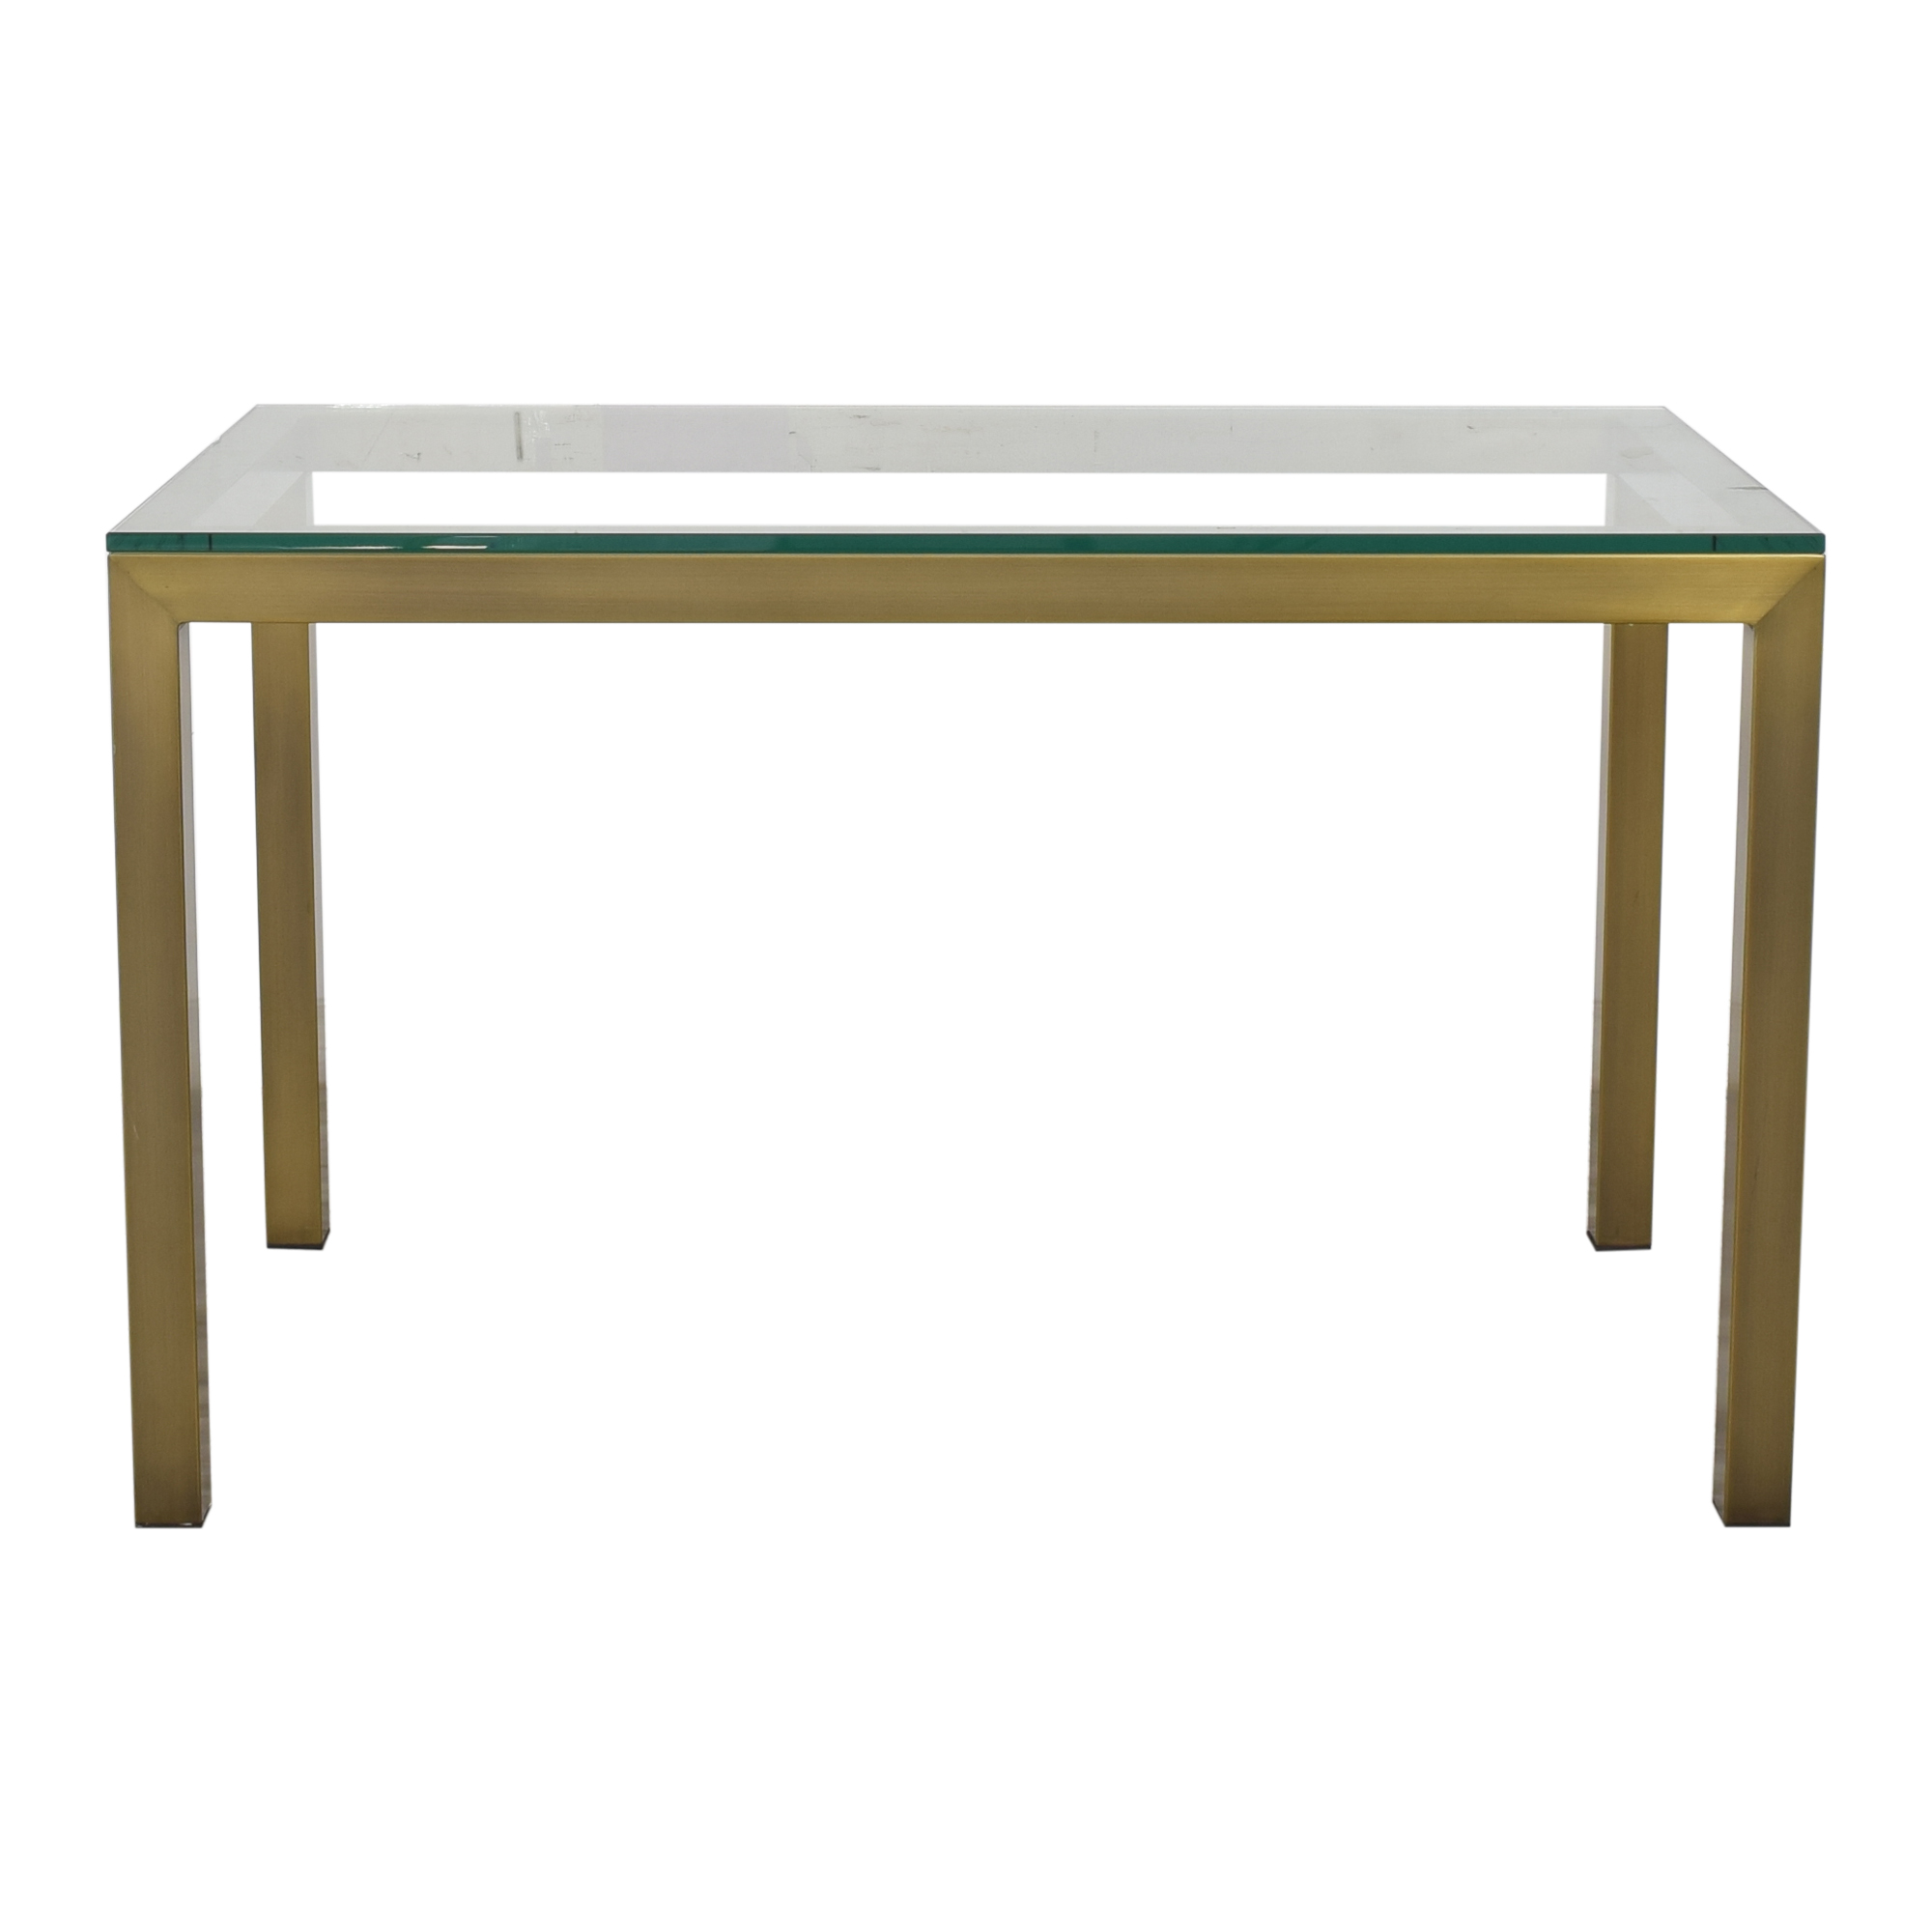 Crate & Barrel Crate & Barrel Parsons Dining Table with Transparent Surface on sale